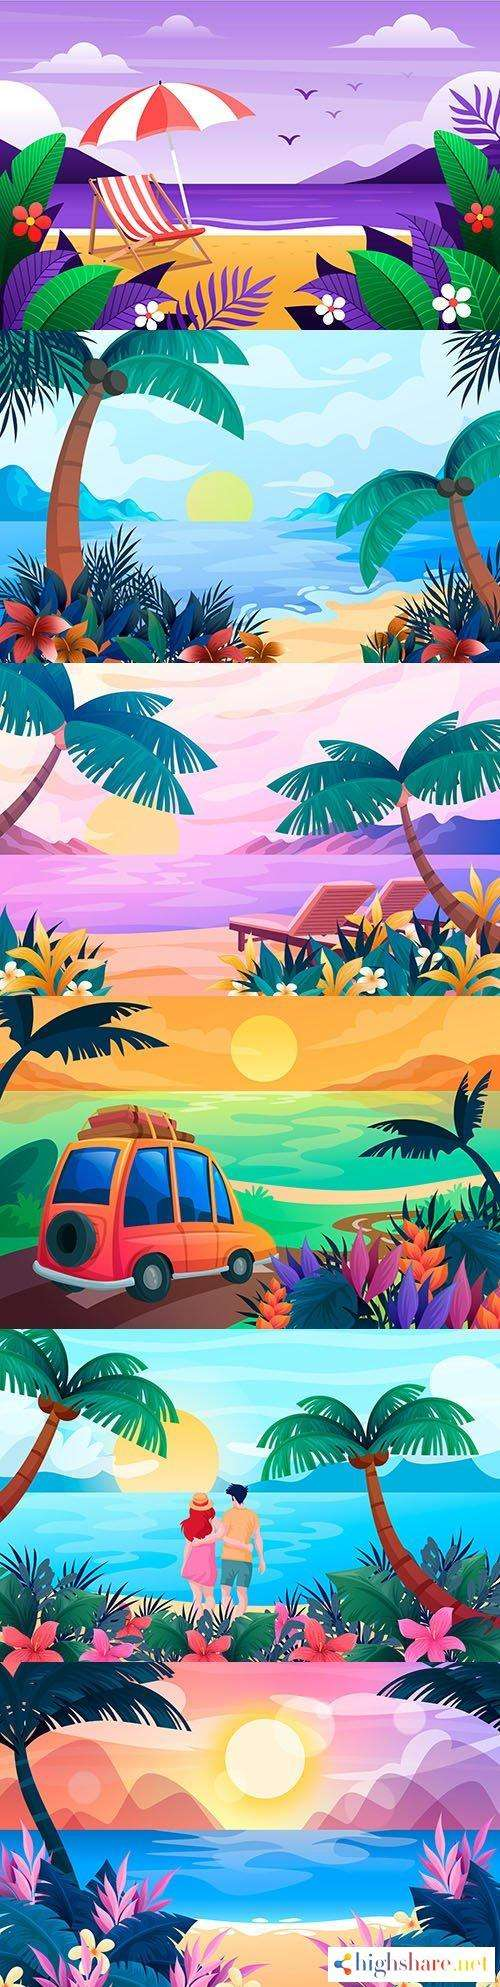 summer beach with tropical leaves and sunset background 5f45305ee9d4e - Summer beach with tropical leaves and sunset background